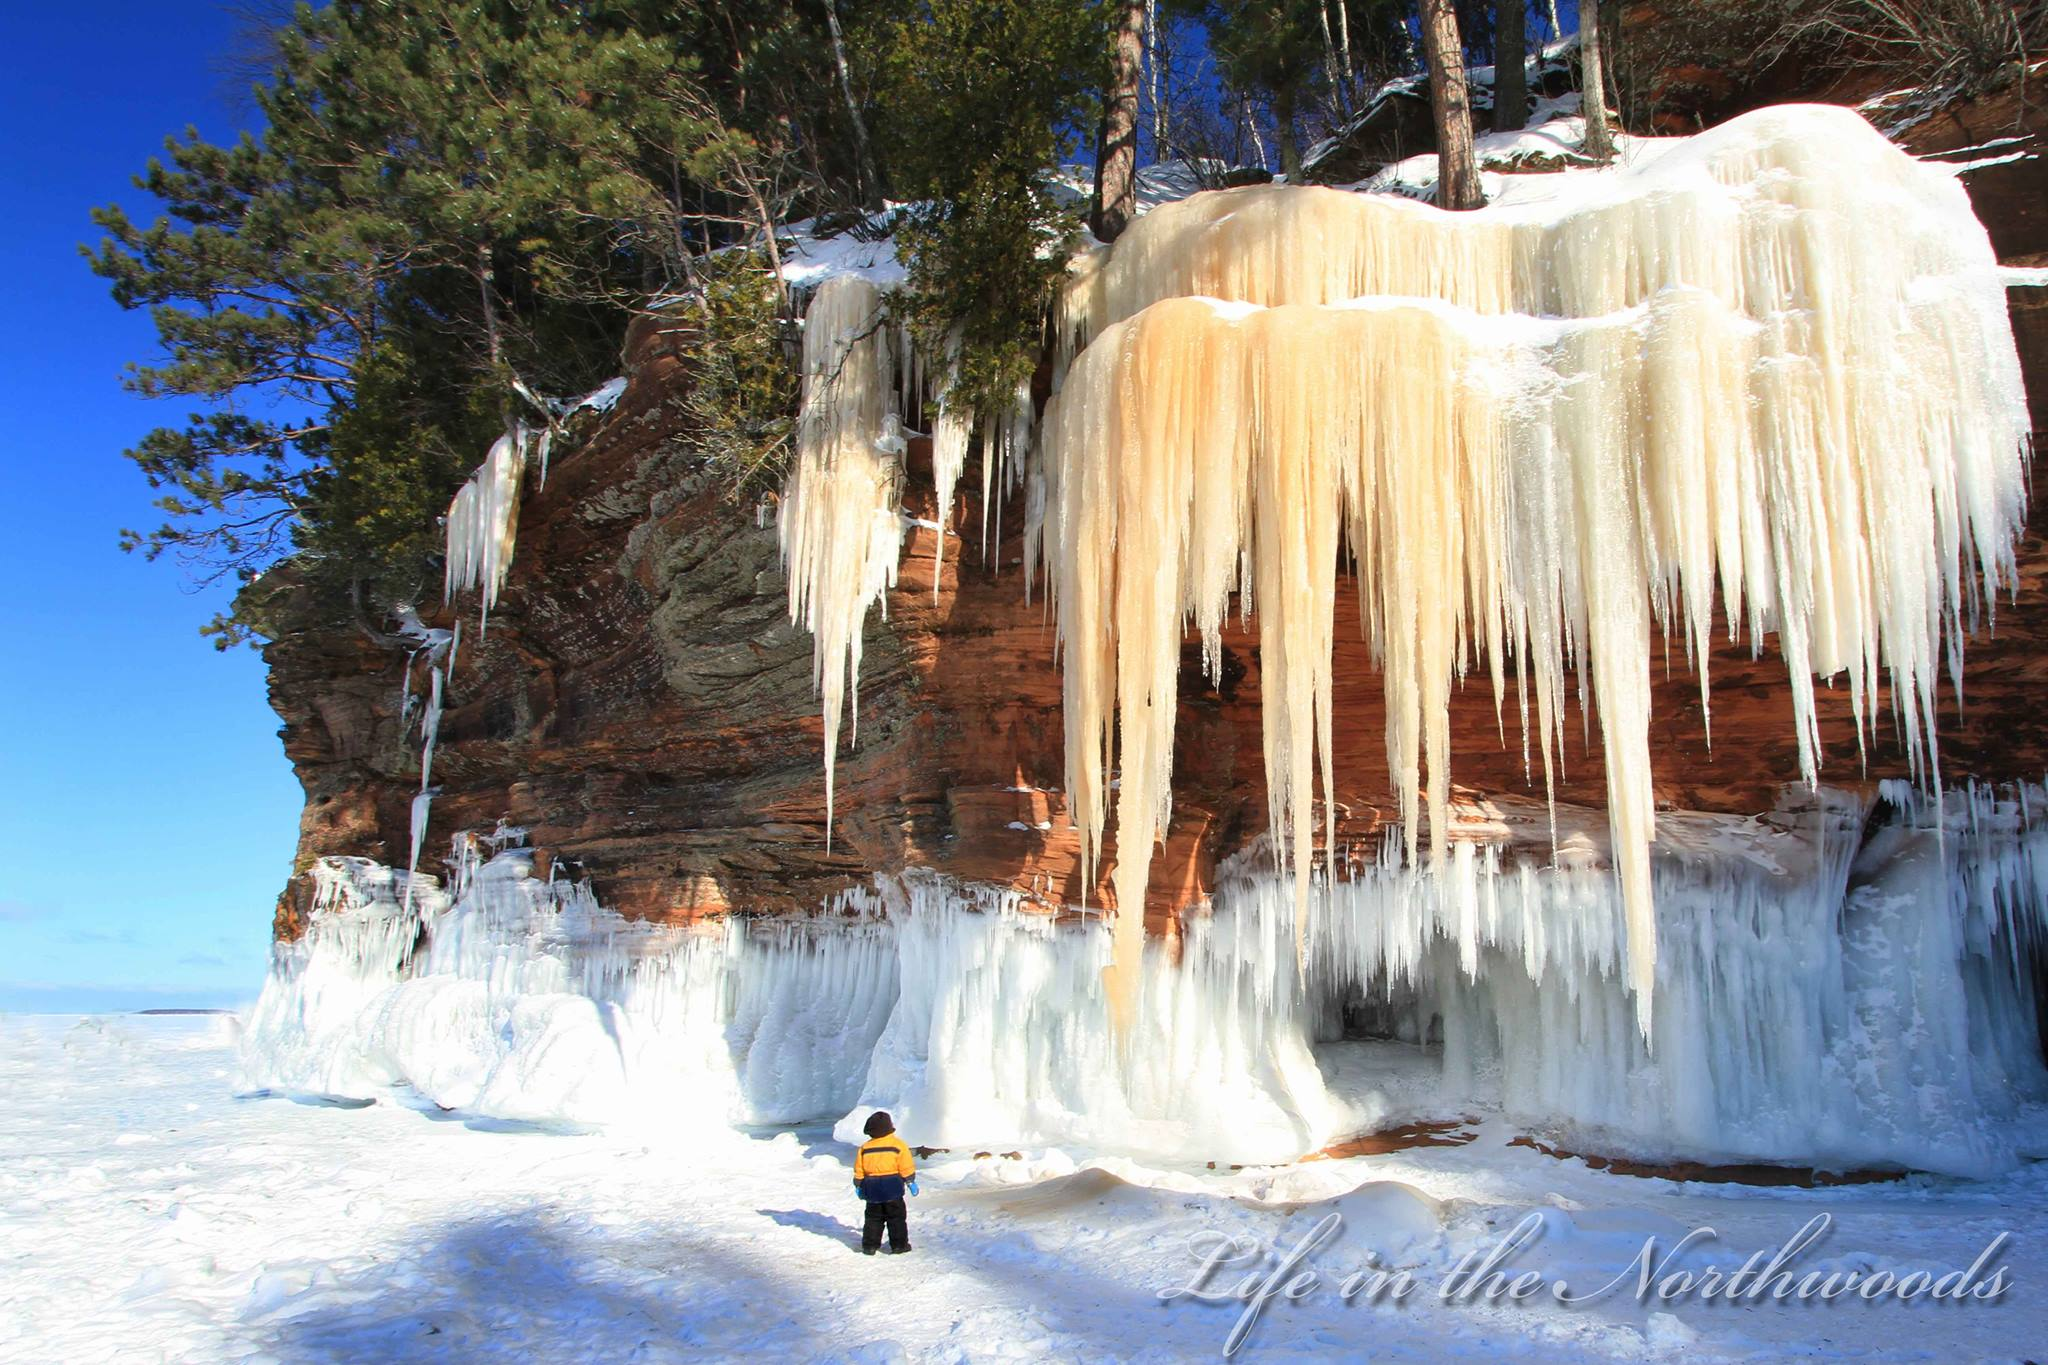 Awe-at-Bayfield-Ice-Caves-Mike-Crowley